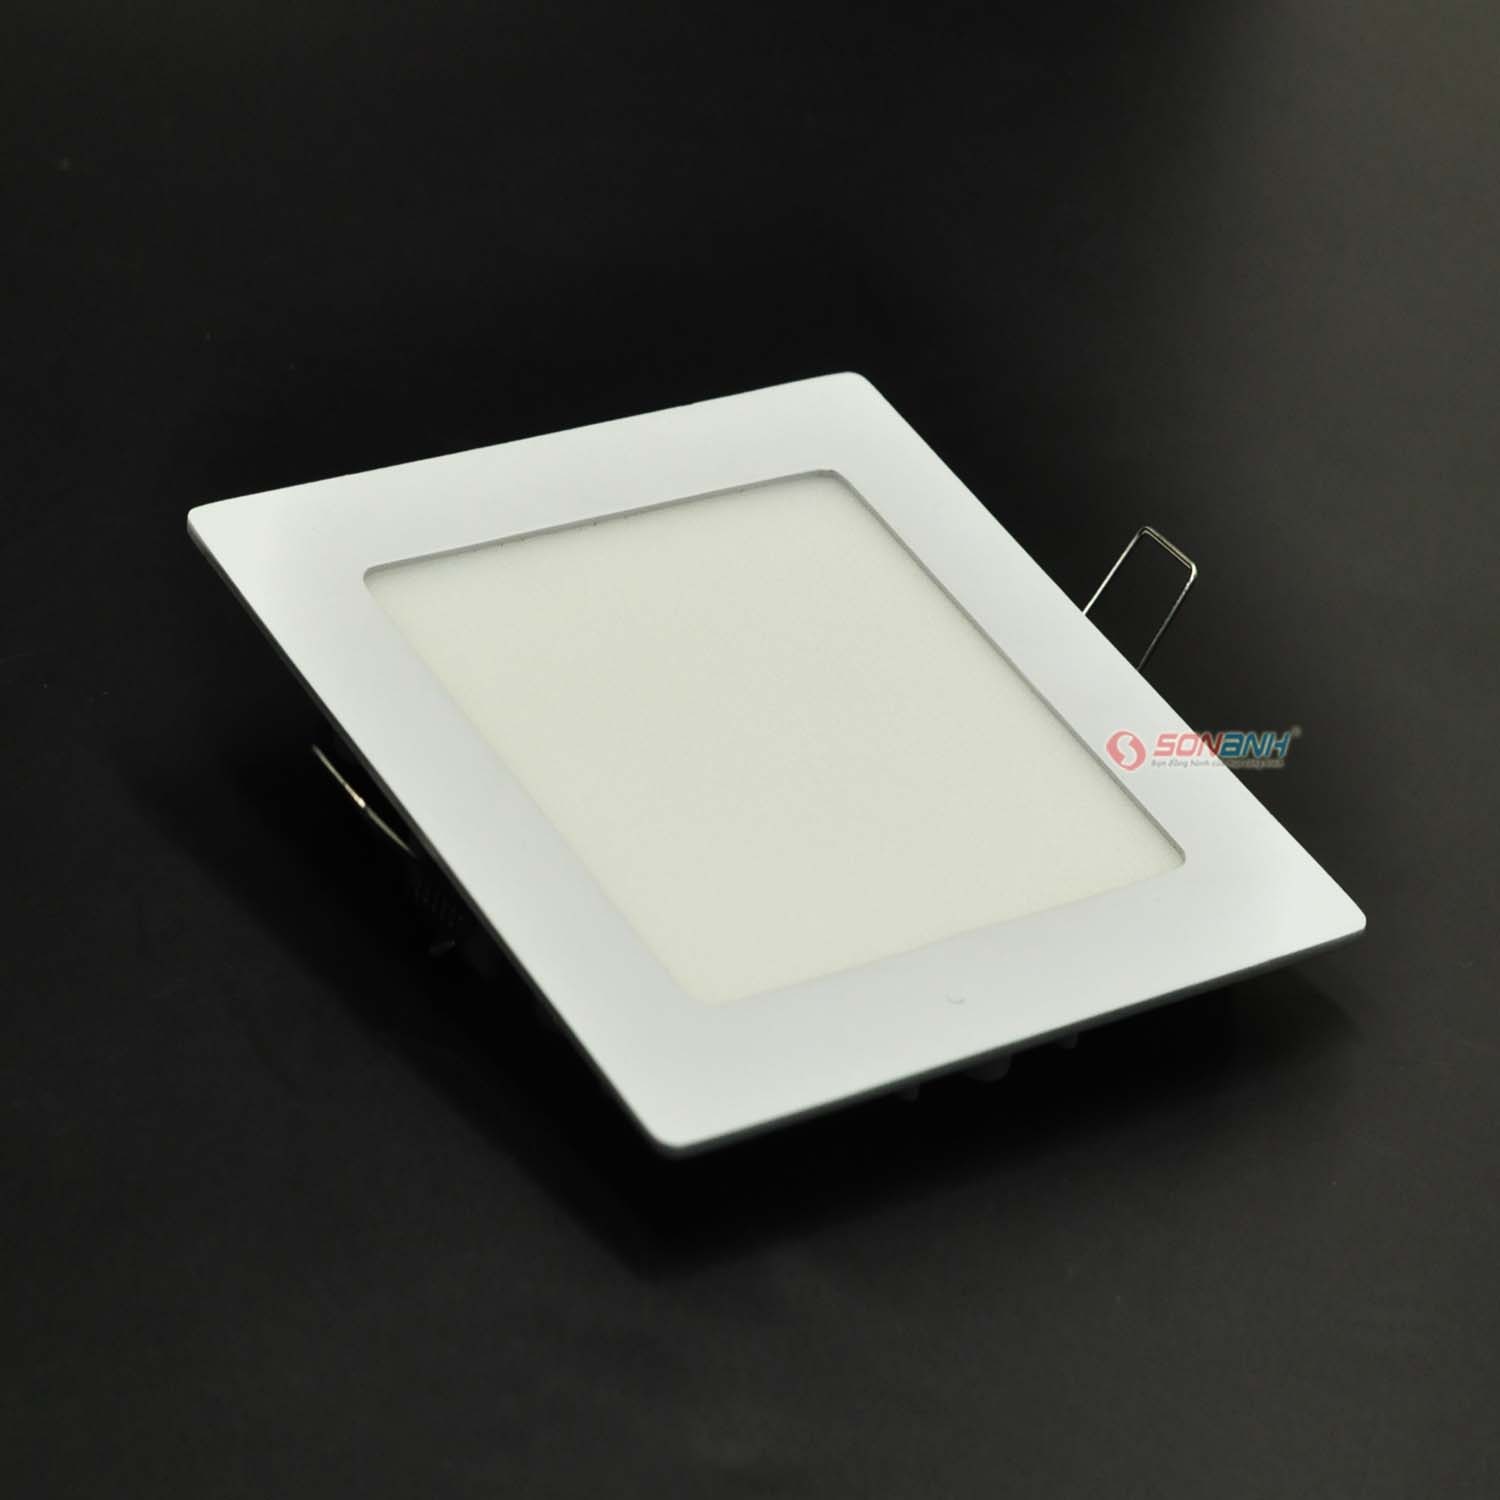 Đèn Panel LED 3W D90 6500k - Zunio